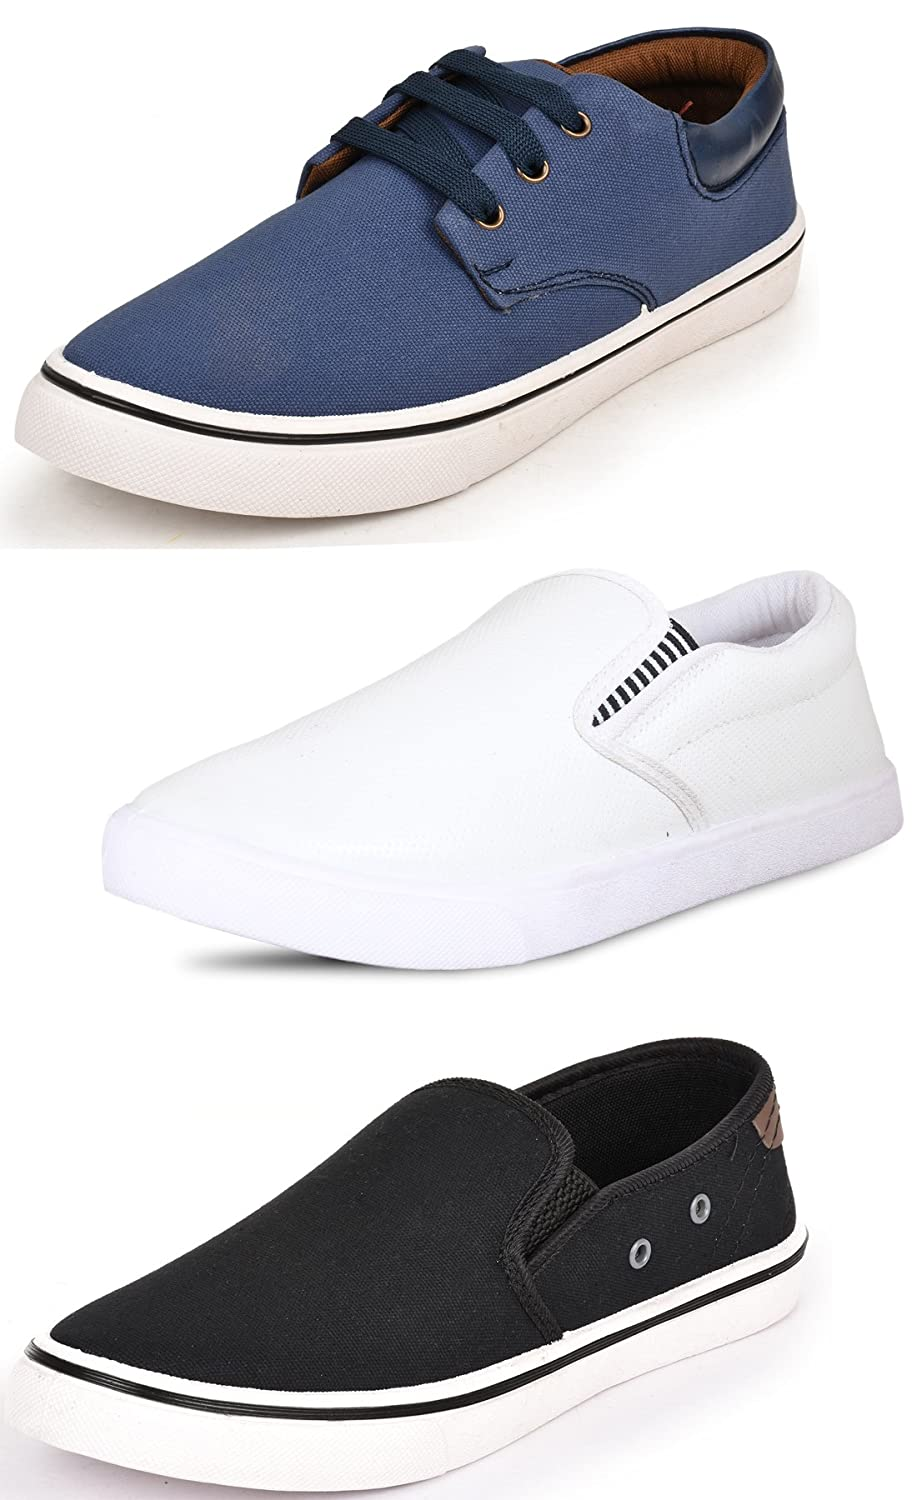 Scatchite Pack of 3 Casual Shoes